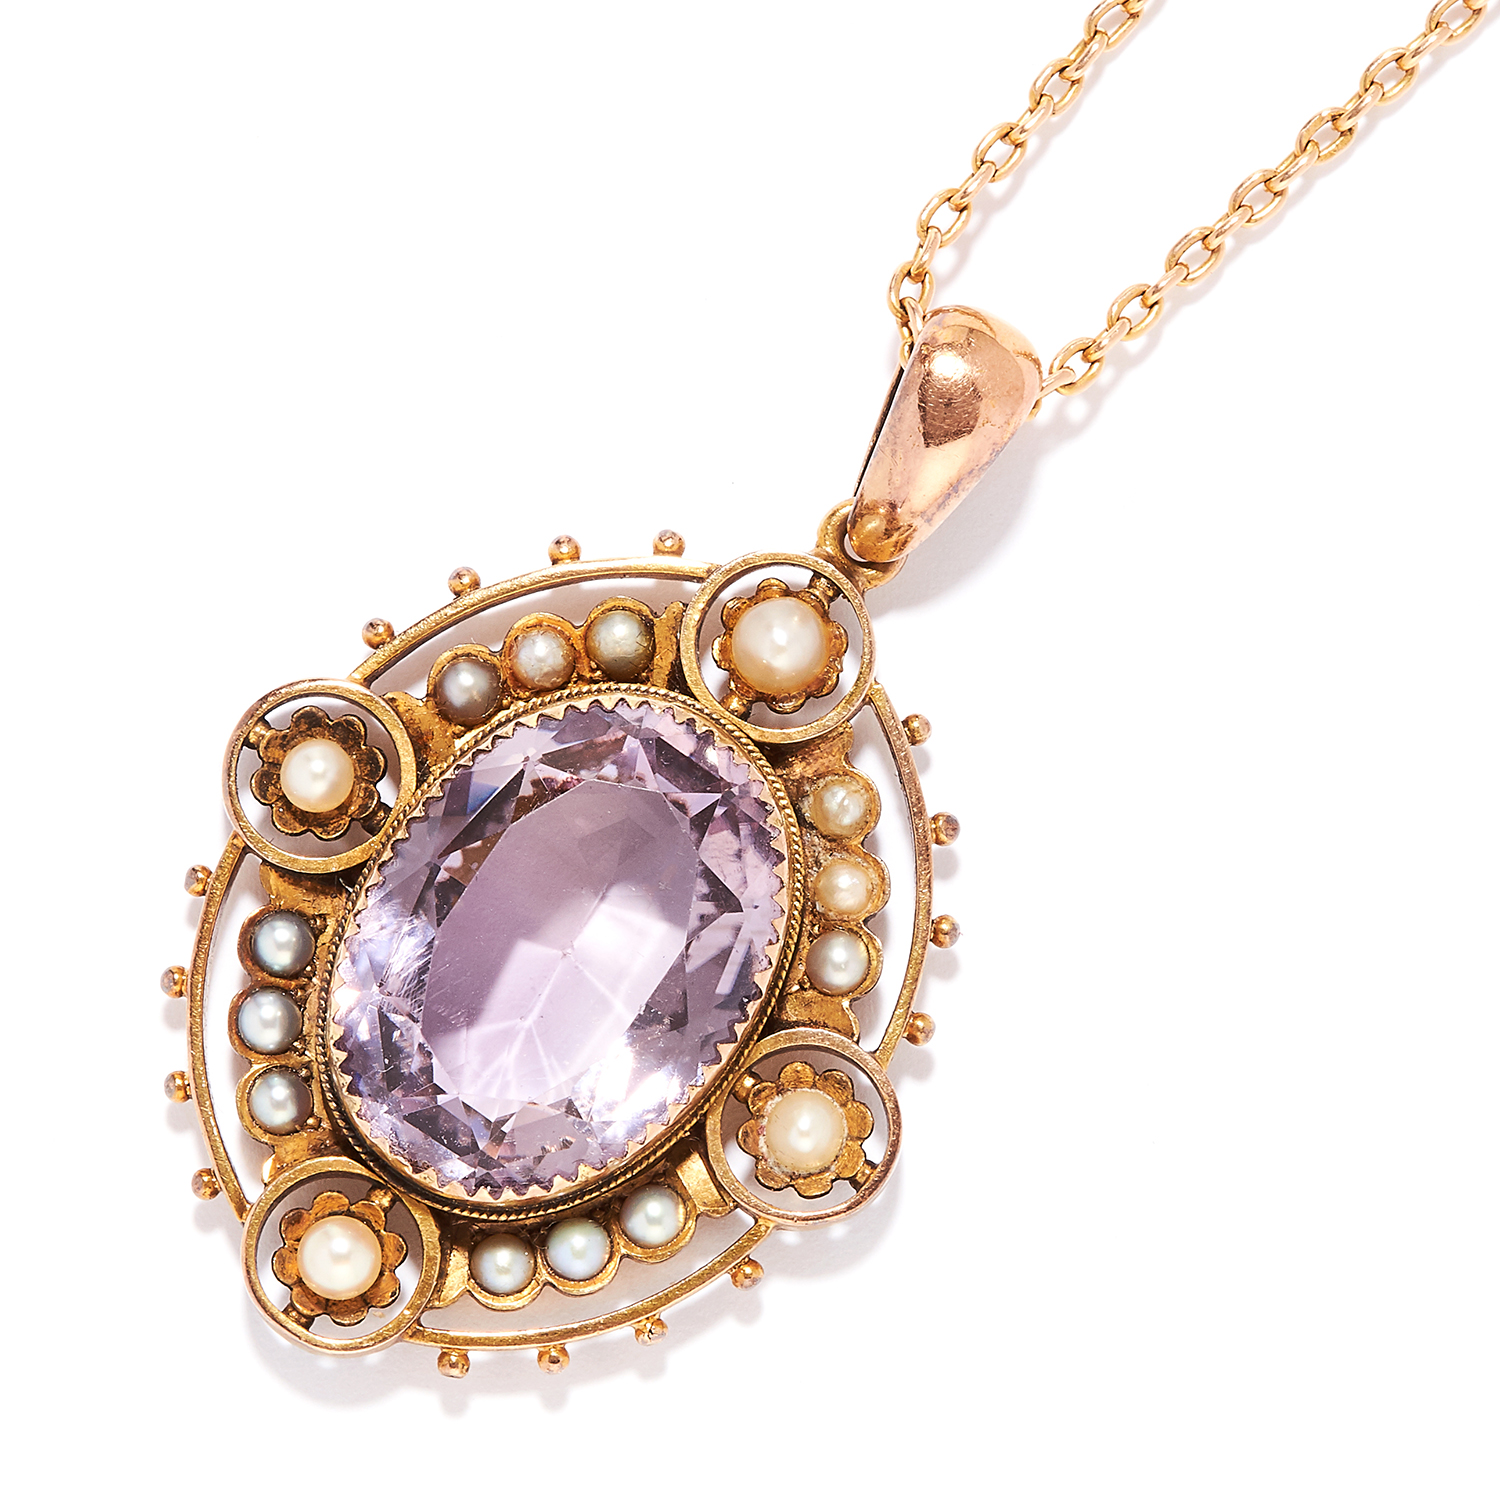 ANTIQUE AMETHYST AND PEARL PENDANT AND CHAIN in 15ct yellow gold, oval cut amethyst within a